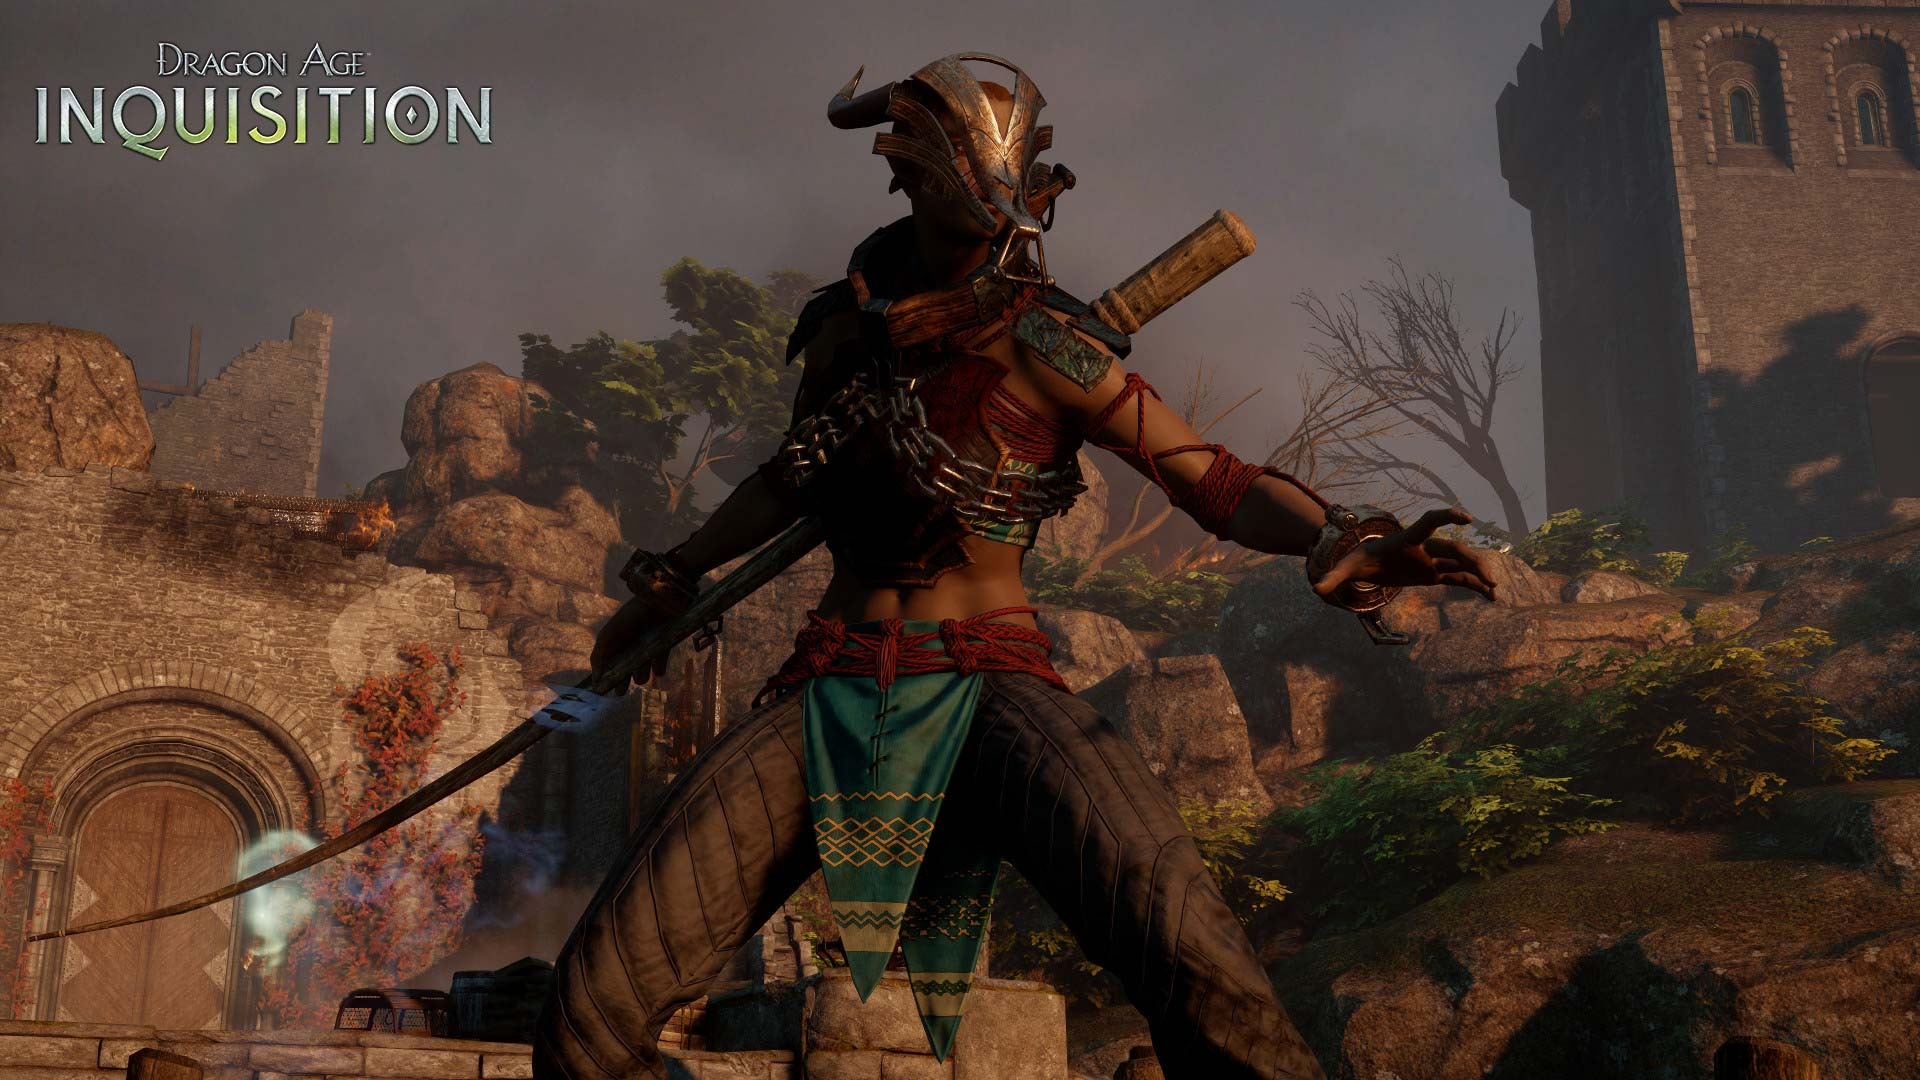 New Multiplayer Agent In The Last Dragon Age Inquisition